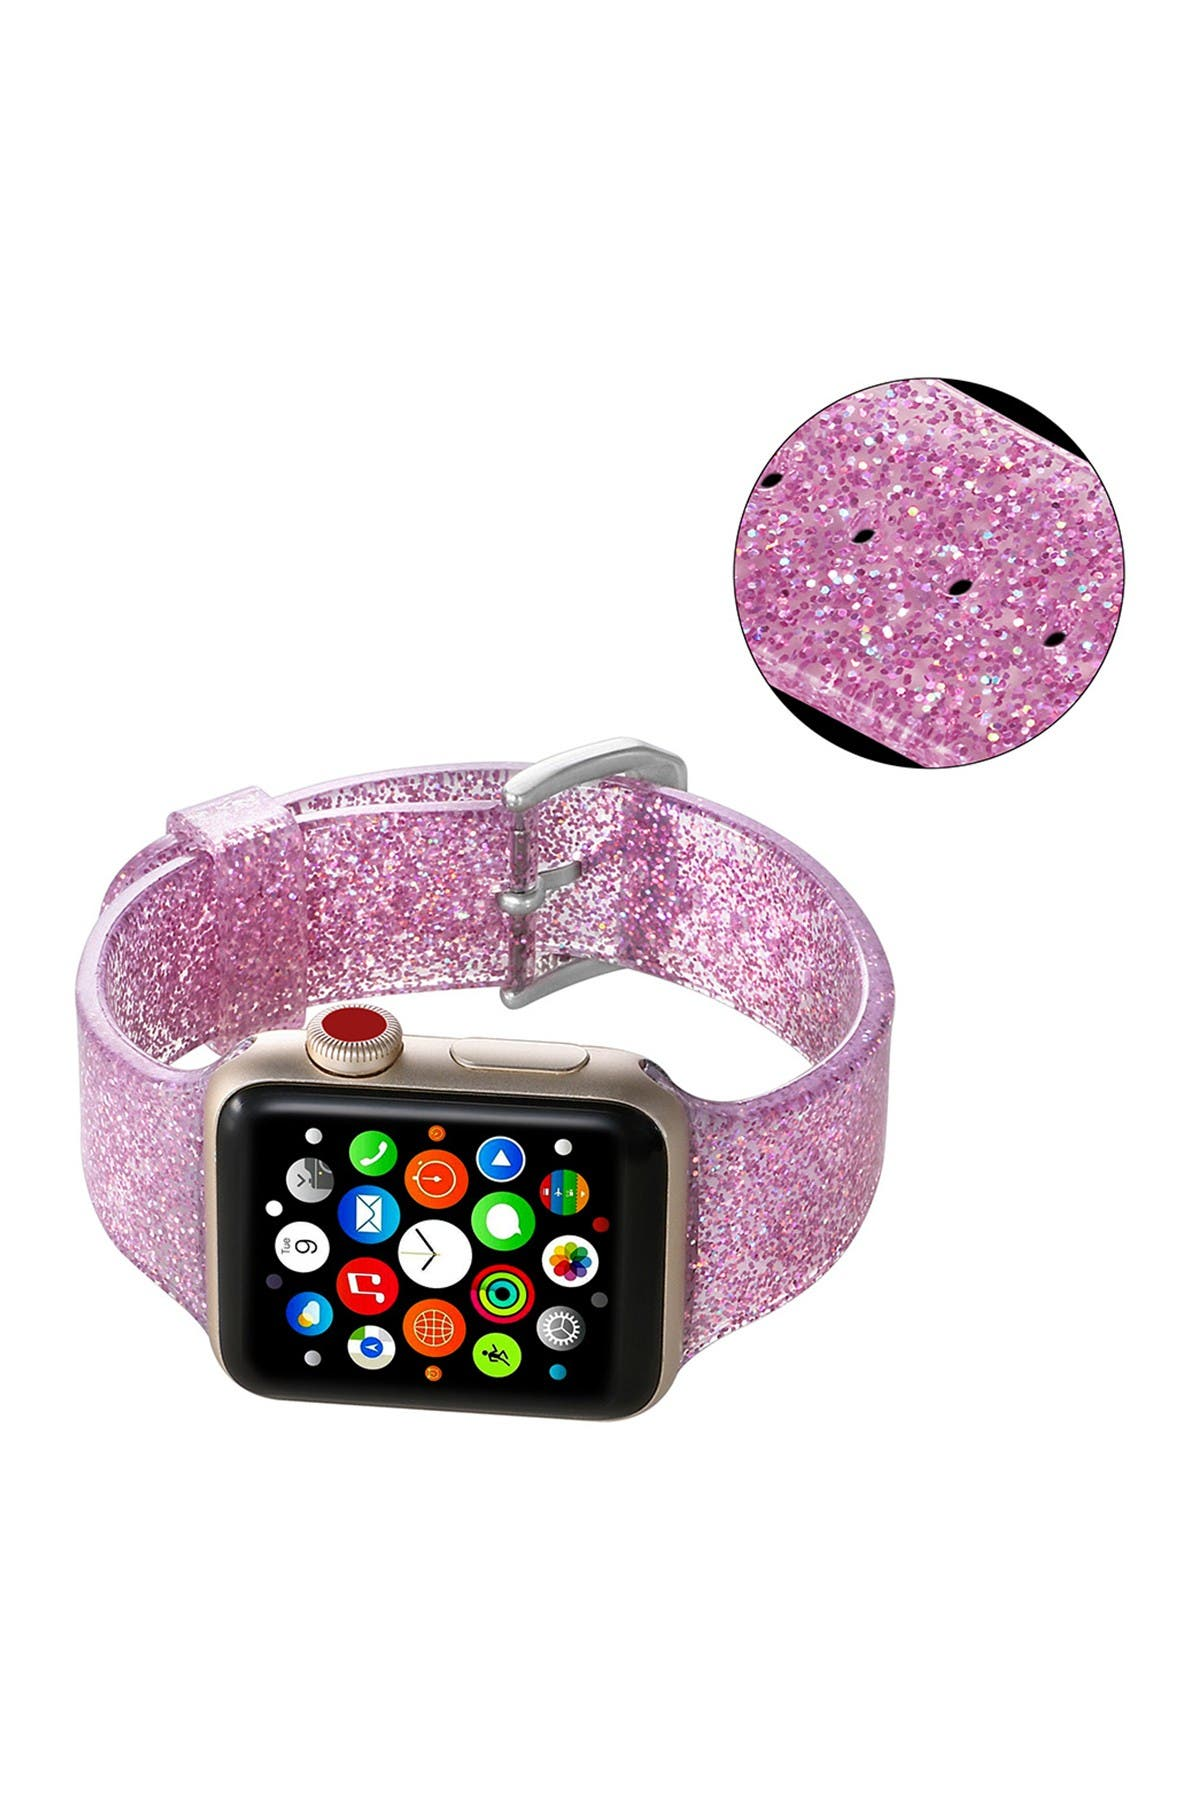 Image of POSH TECH Silicone Bling Glitter Band with Buckle Closure Version for 42mm/44mm Apple Watch Series 1, 2, 3, 4, 5